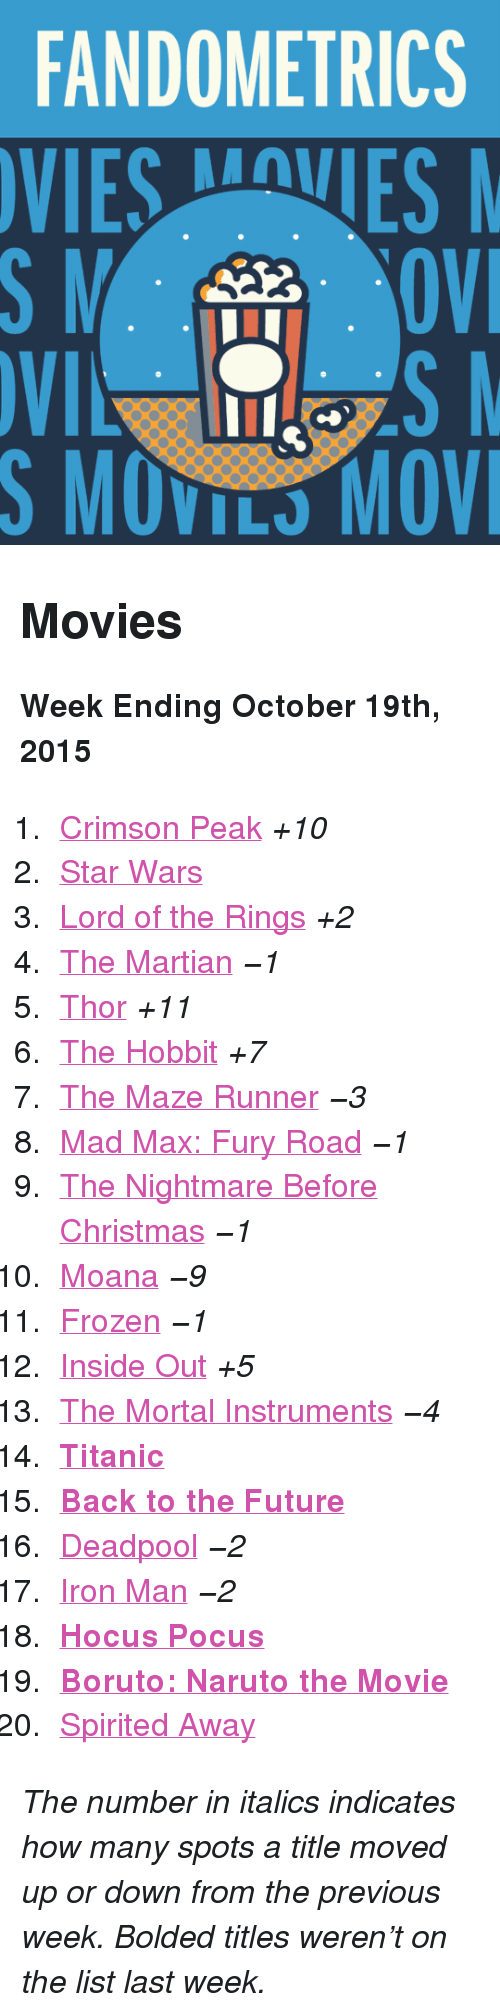 "moana: FANDOMETRICS  VIESVES  S MOVILS MOV <h2>Movies</h2><p><b>Week Ending October 19th, 2015</b></p><ol><li><a href=""http://www.tumblr.com/search/crimson%20peak"">Crimson Peak</a> <i>+10</i></li>  <li><a href=""http://www.tumblr.com/search/star%20wars"">Star Wars</a> </li>  <li><a href=""http://www.tumblr.com/search/lotr"">Lord of the Rings</a> <i>+2</i></li>  <li><a href=""http://www.tumblr.com/search/the%20martian"">The Martian</a> <i>−1</i></li>  <li><a href=""http://www.tumblr.com/search/thor"">Thor</a> <i>+11</i></li>  <li><a href=""http://www.tumblr.com/search/the%20hobbit"">The Hobbit</a> <i>+7</i></li>  <li><a href=""http://www.tumblr.com/search/the%20maze%20runner"">The Maze Runner</a> <i>−3</i></li>  <li><a href=""http://www.tumblr.com/search/mad%20max"">Mad Max: Fury Road</a> <i>−1</i></li>  <li><a href=""http://www.tumblr.com/search/nightmare%20before%20christmas"">The Nightmare Before Christmas</a> <i>−1</i></li>  <li><a href=""http://www.tumblr.com/search/moana"">Moana</a> <i>−9</i></li>  <li><a href=""http://www.tumblr.com/search/frozen"">Frozen</a> <i>−1</i></li>  <li><a href=""http://www.tumblr.com/search/inside%20out"">Inside Out</a> <i>+5</i></li>  <li><a href=""http://www.tumblr.com/search/the%20mortal%20instruments"">The Mortal Instruments</a> <i>−4</i></li>  <li><a href=""http://www.tumblr.com/search/titanic""><b>Titanic</b></a></li>  <li><a href=""http://www.tumblr.com/search/back%20to%20the%20future""><b>Back to the Future</b></a></li>  <li><a href=""http://www.tumblr.com/search/deadpool"">Deadpool</a> <i>−2</i></li>  <li><a href=""http://www.tumblr.com/search/iron%20man"">Iron Man</a> <i>−2</i></li>  <li><a href=""http://www.tumblr.com/search/hocus%20pocus""><b>Hocus Pocus</b></a> </li>  <li><a href=""http://www.tumblr.com/search/boruto%20the%20movie""><b>Boruto: Naruto the Movie</b></a></li>  <li><a href=""http://www.tumblr.com/search/spirited%20away"">Spirited Away</a></li></ol><p><i>The number in italics indicates how many spots a title moved up or down from the previous week. Bolded titles weren't on the list last week.</i></p>"